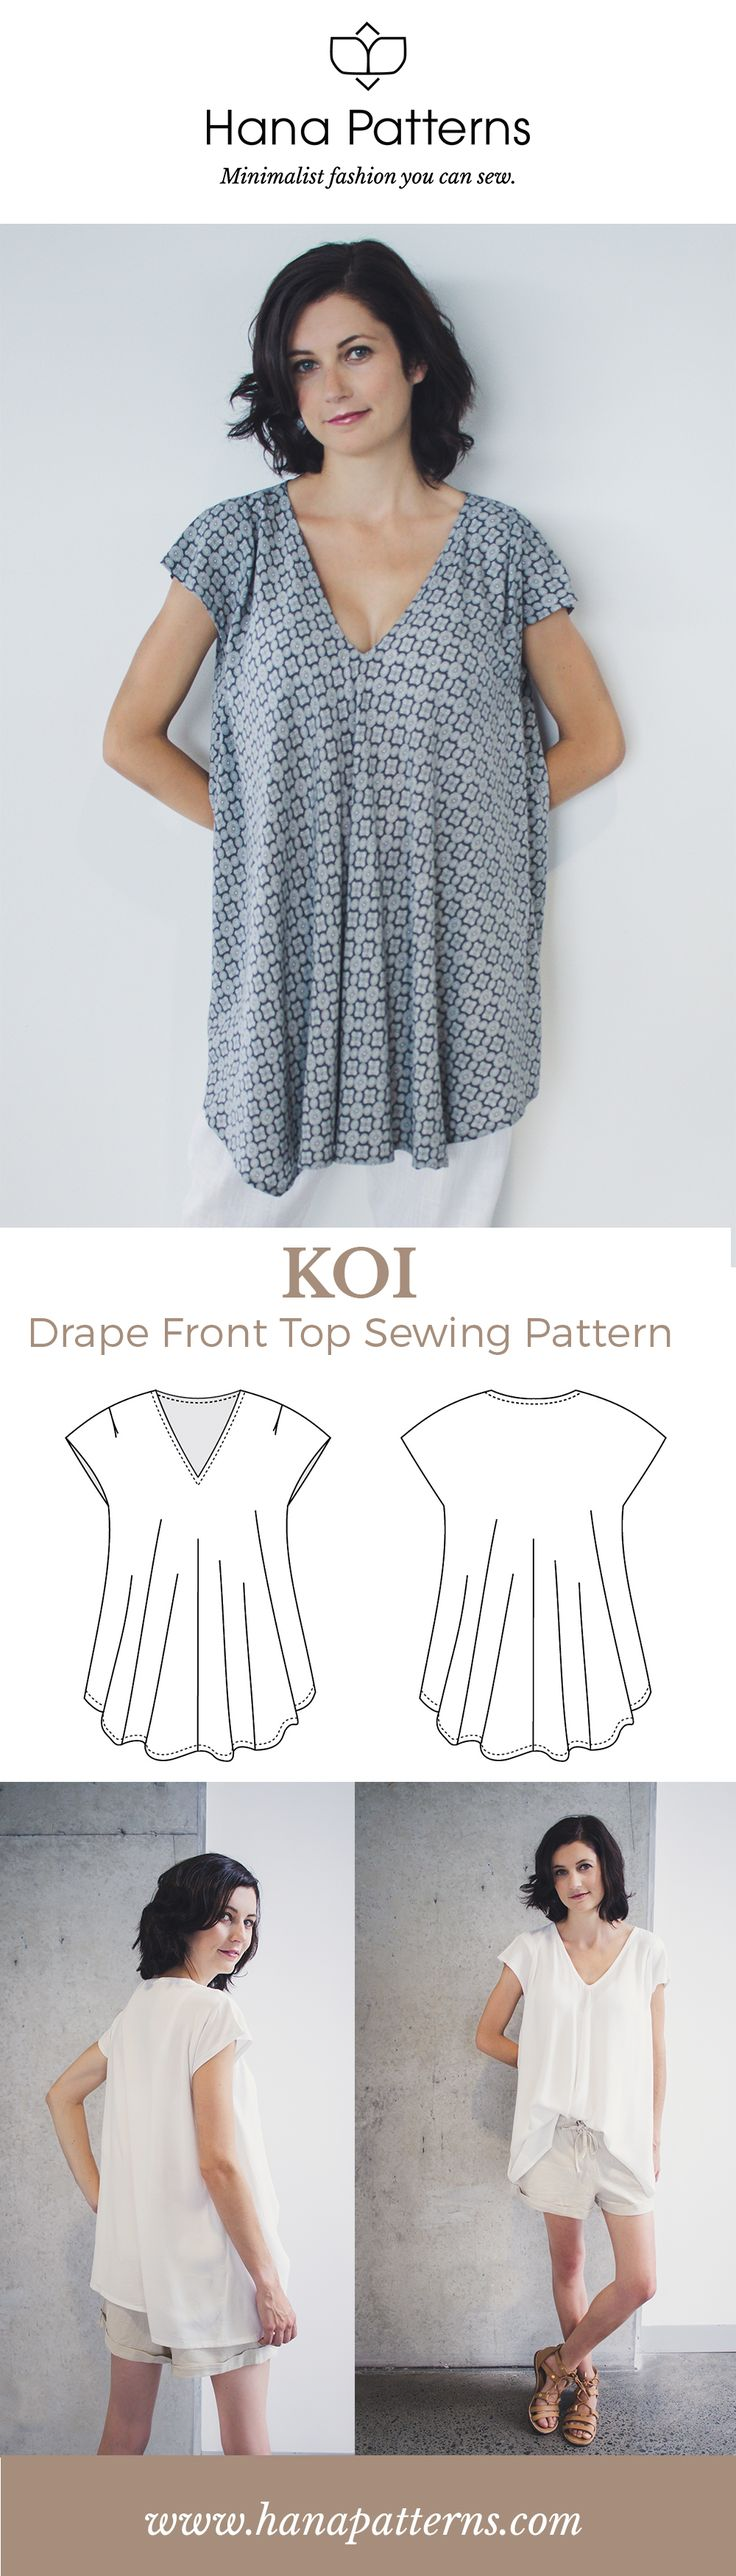 Modern Sewing Patterns for Women   The KOI drape front top is a versatile piece for your capsule wardrobe. Make it in beautiful drapey fabrics like crepe de chine and rayon. Find out more at www.hanapatterns.com